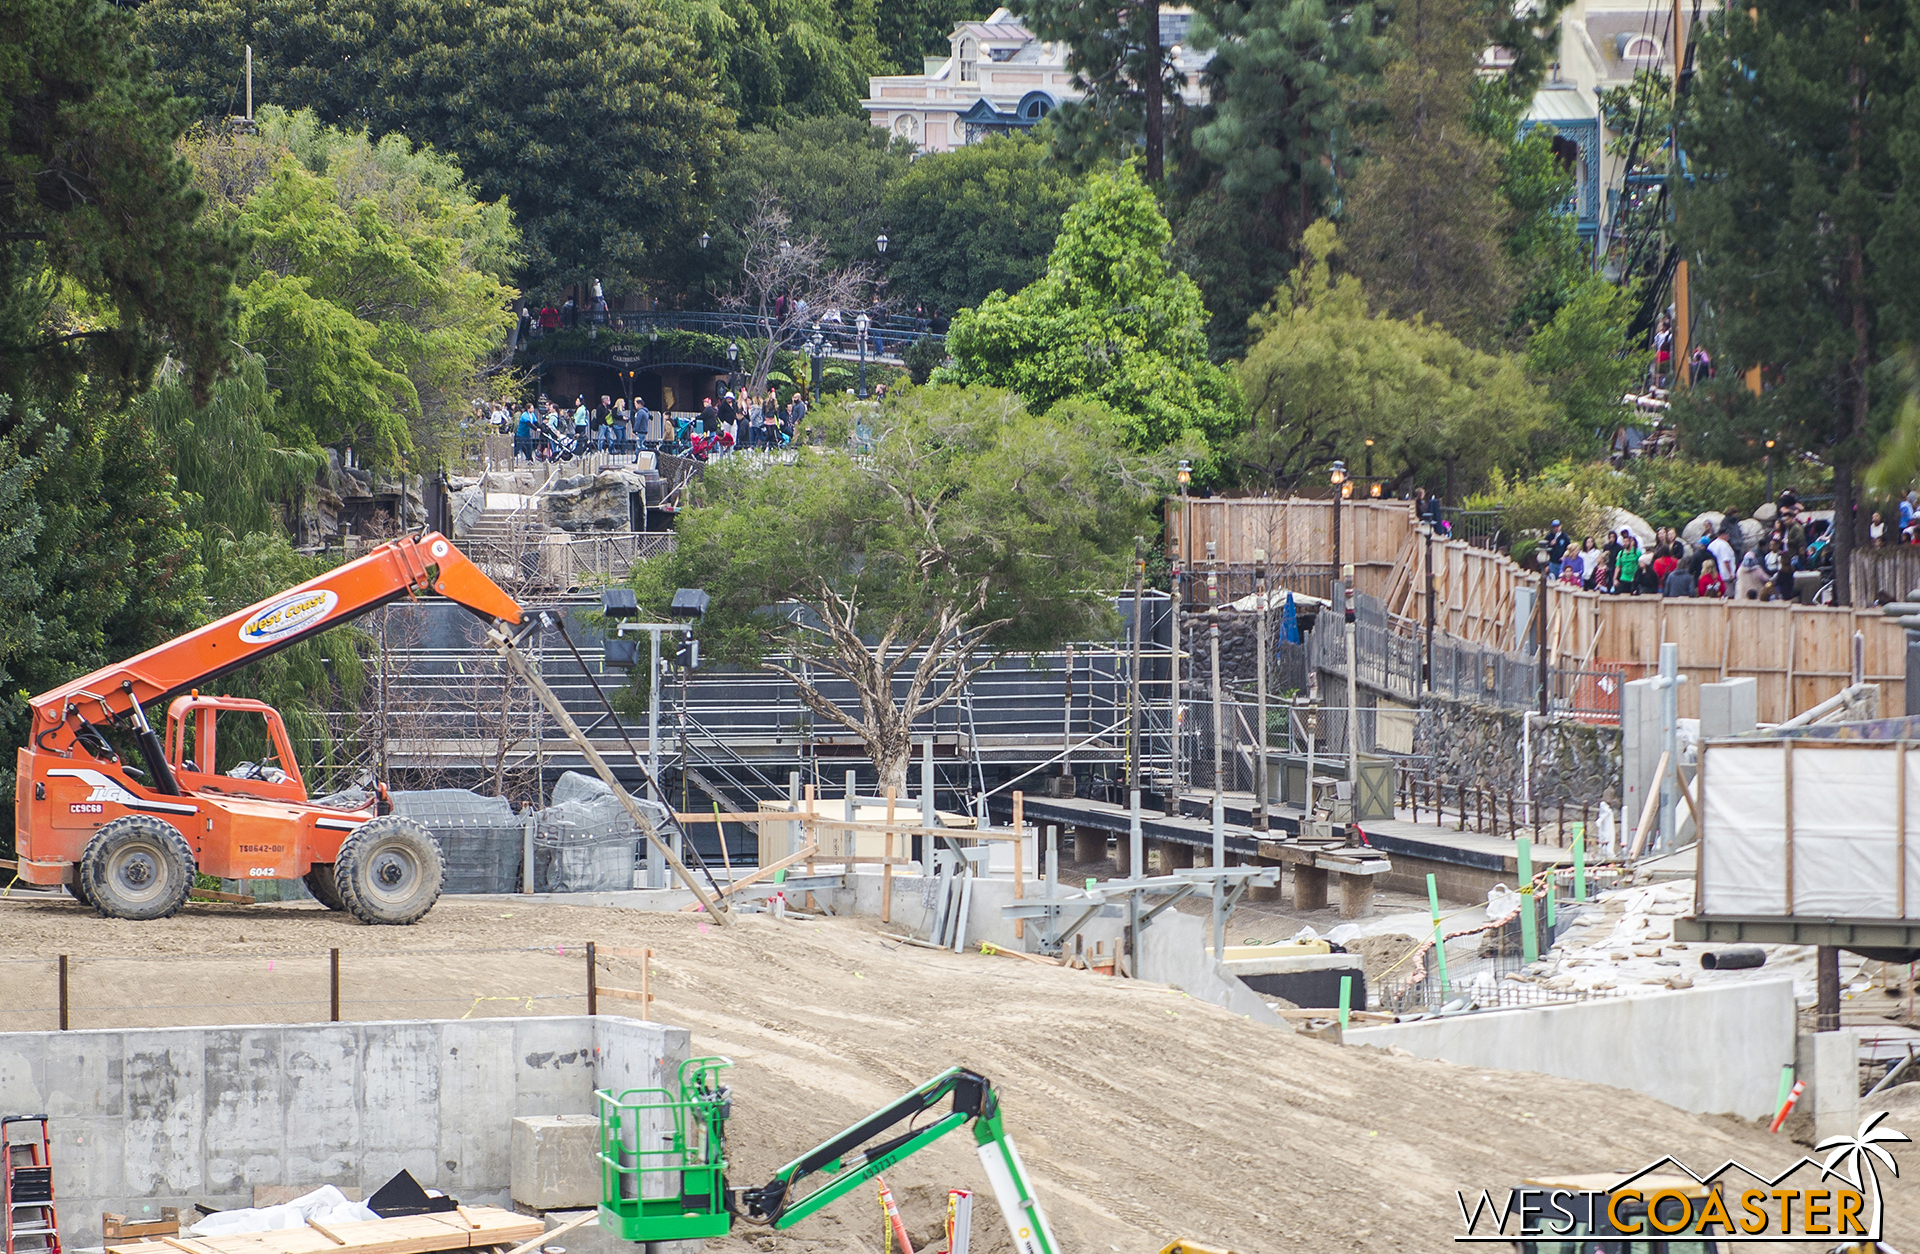 """This is purely my own speculation, but said bridge/pathway might be the back entrance into """"Star Wars"""" Land, angling along the reconfigured bank of the Rivers of America briefly before crossing over or under the Disneyland Railroad to enter Star Wars Land en proper."""